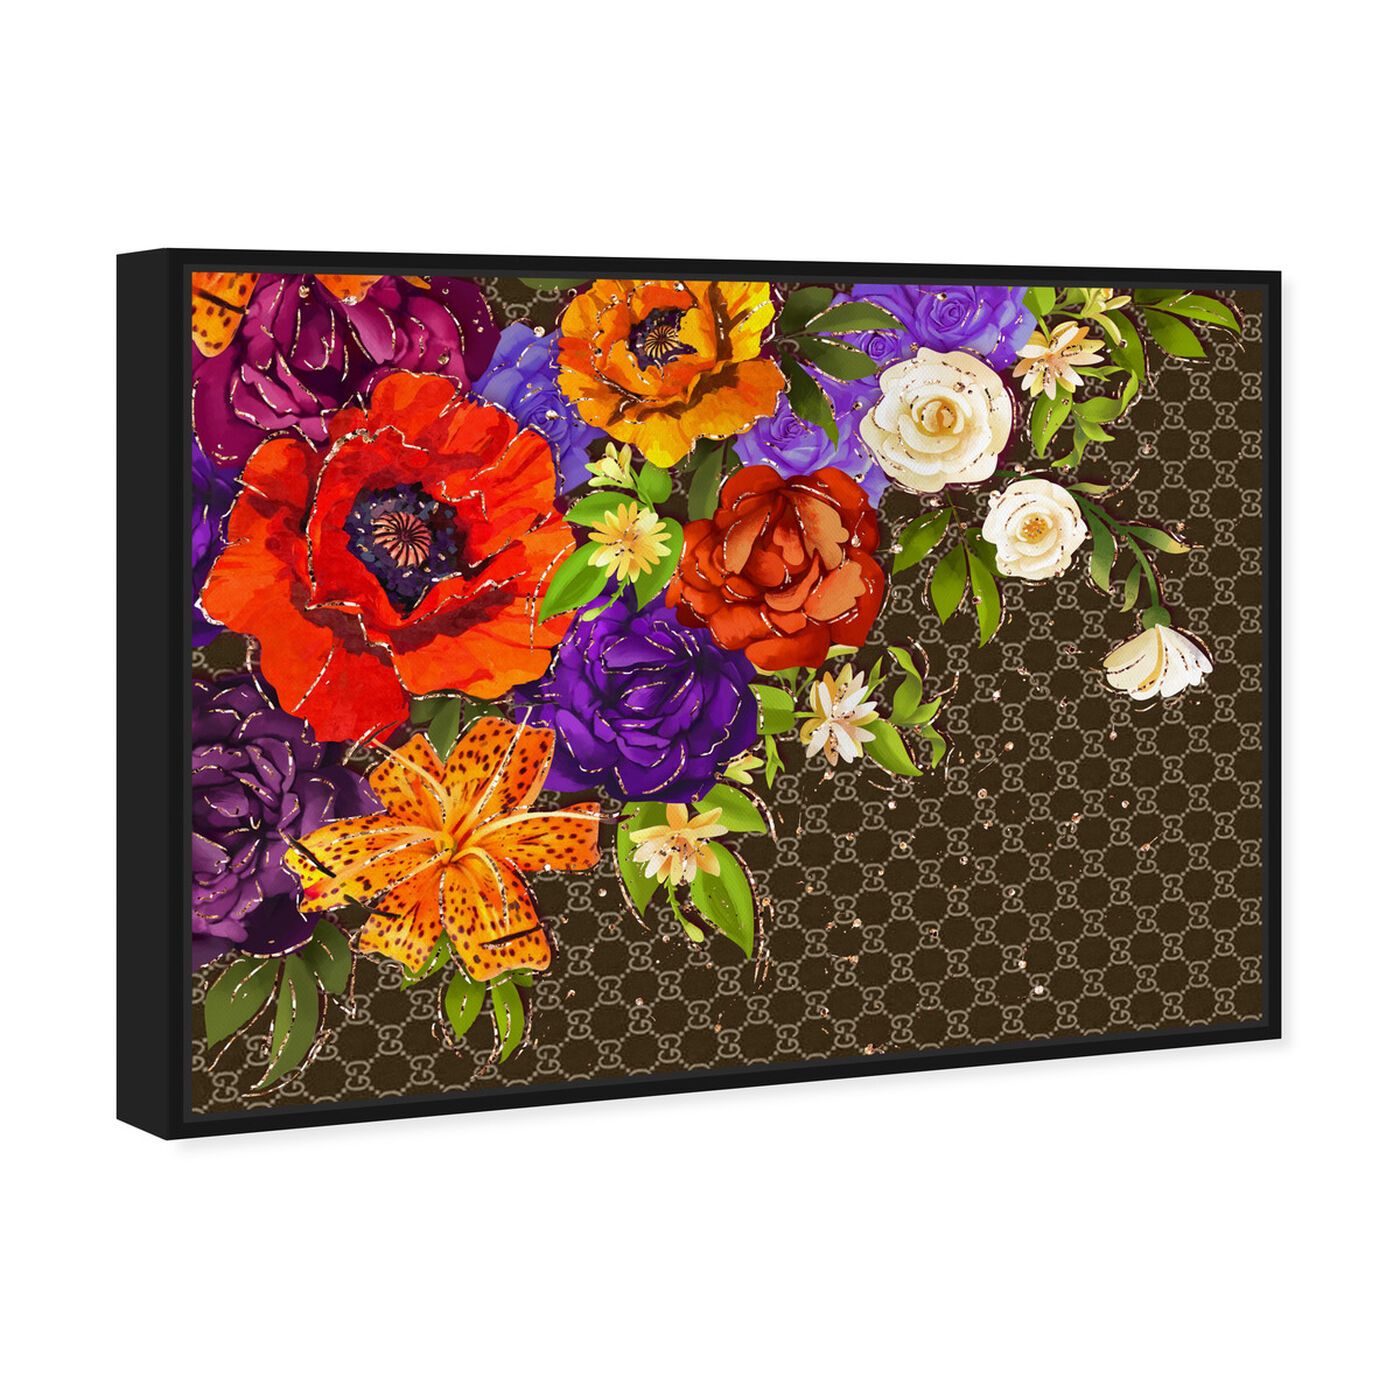 Angled view of Firenze Fashion Floral featuring floral and botanical and florals art.